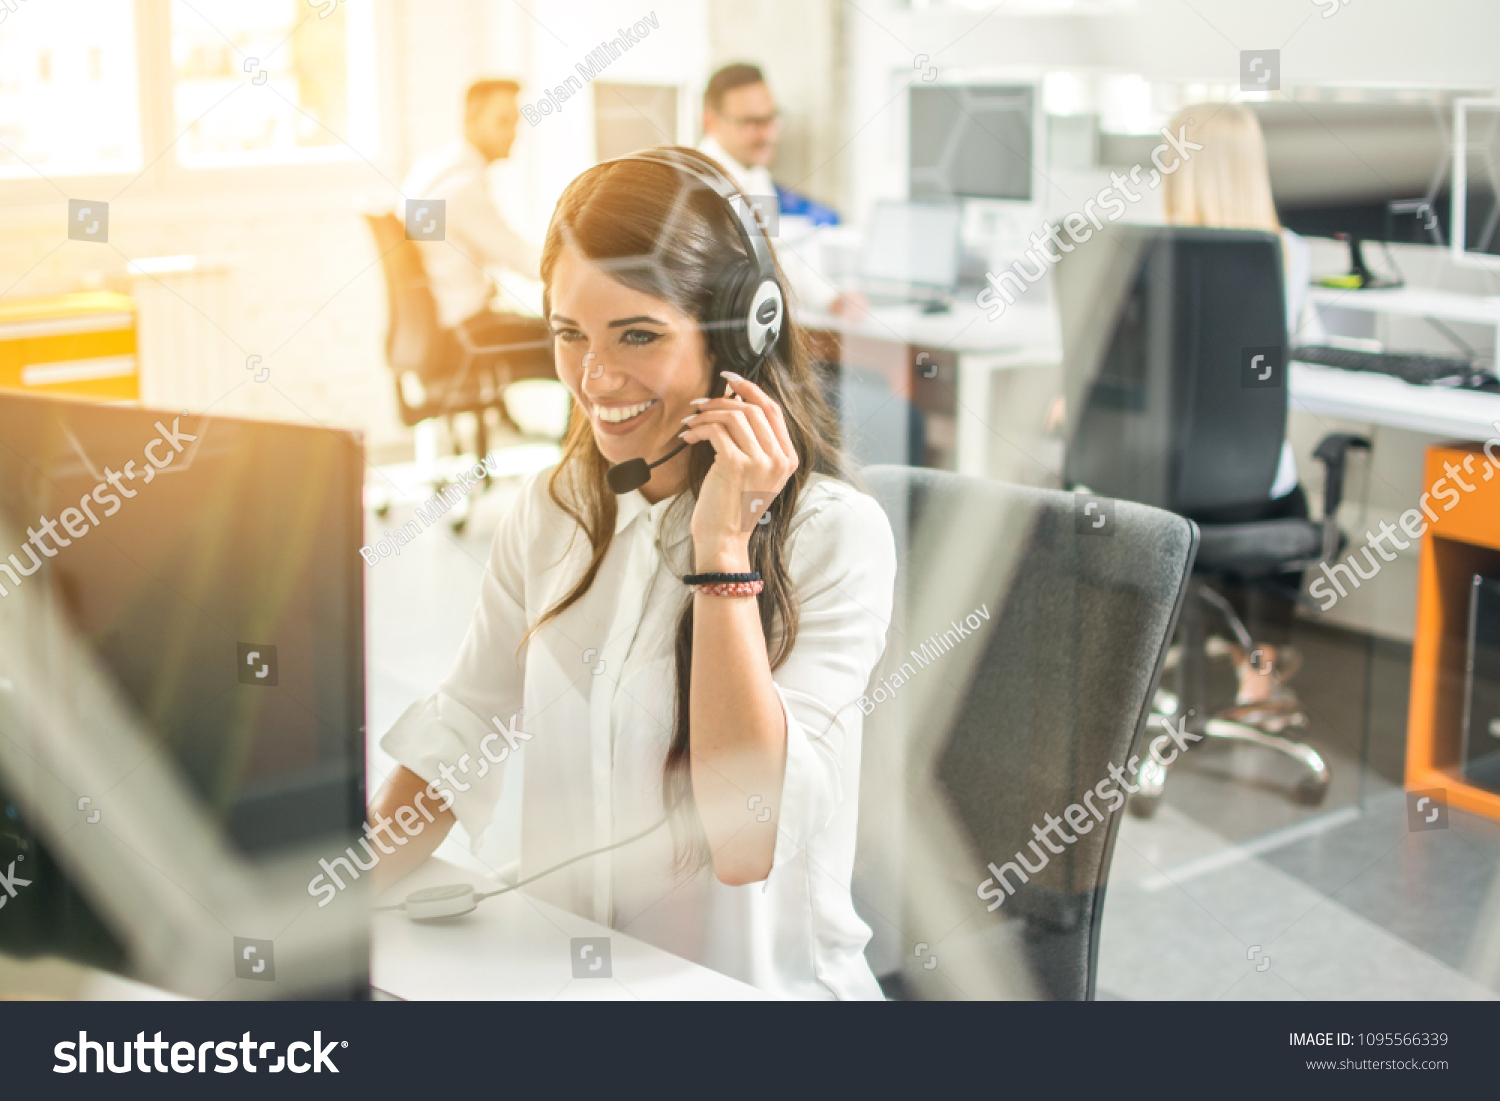 Smiling female customer support operator with headset working in office #1095566339